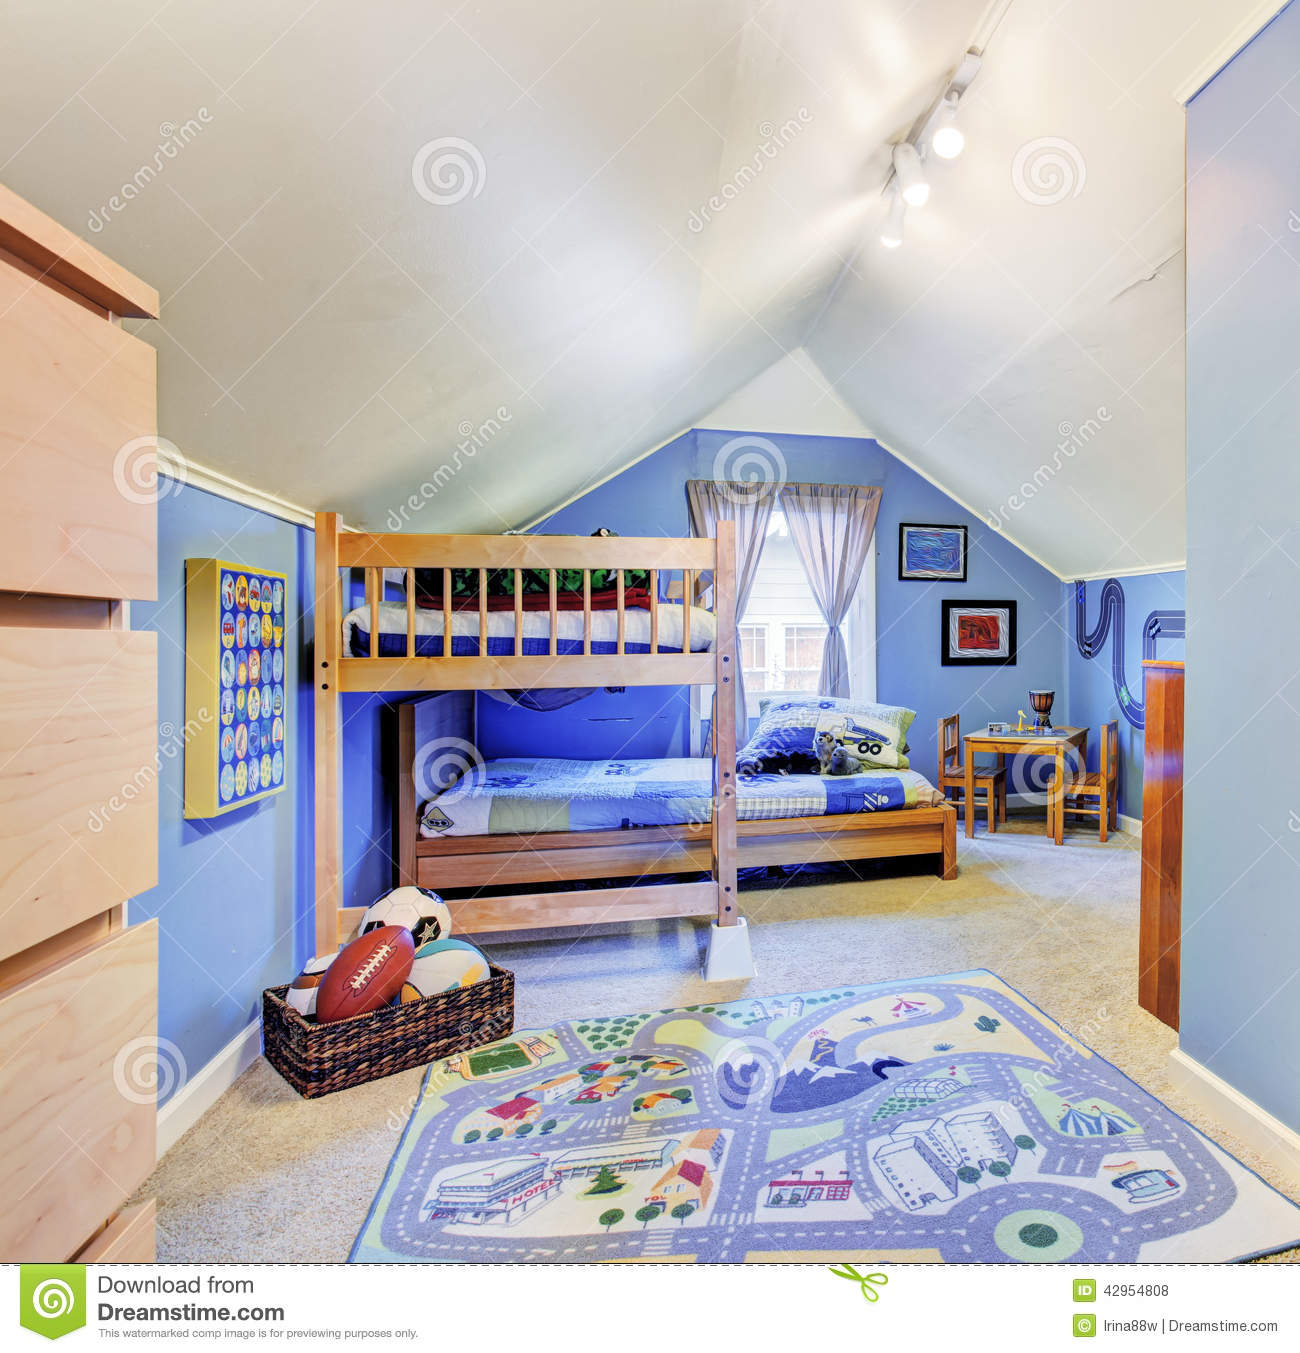 Bright Kids Room: Bright Blue Kids Room With Bunk Bed